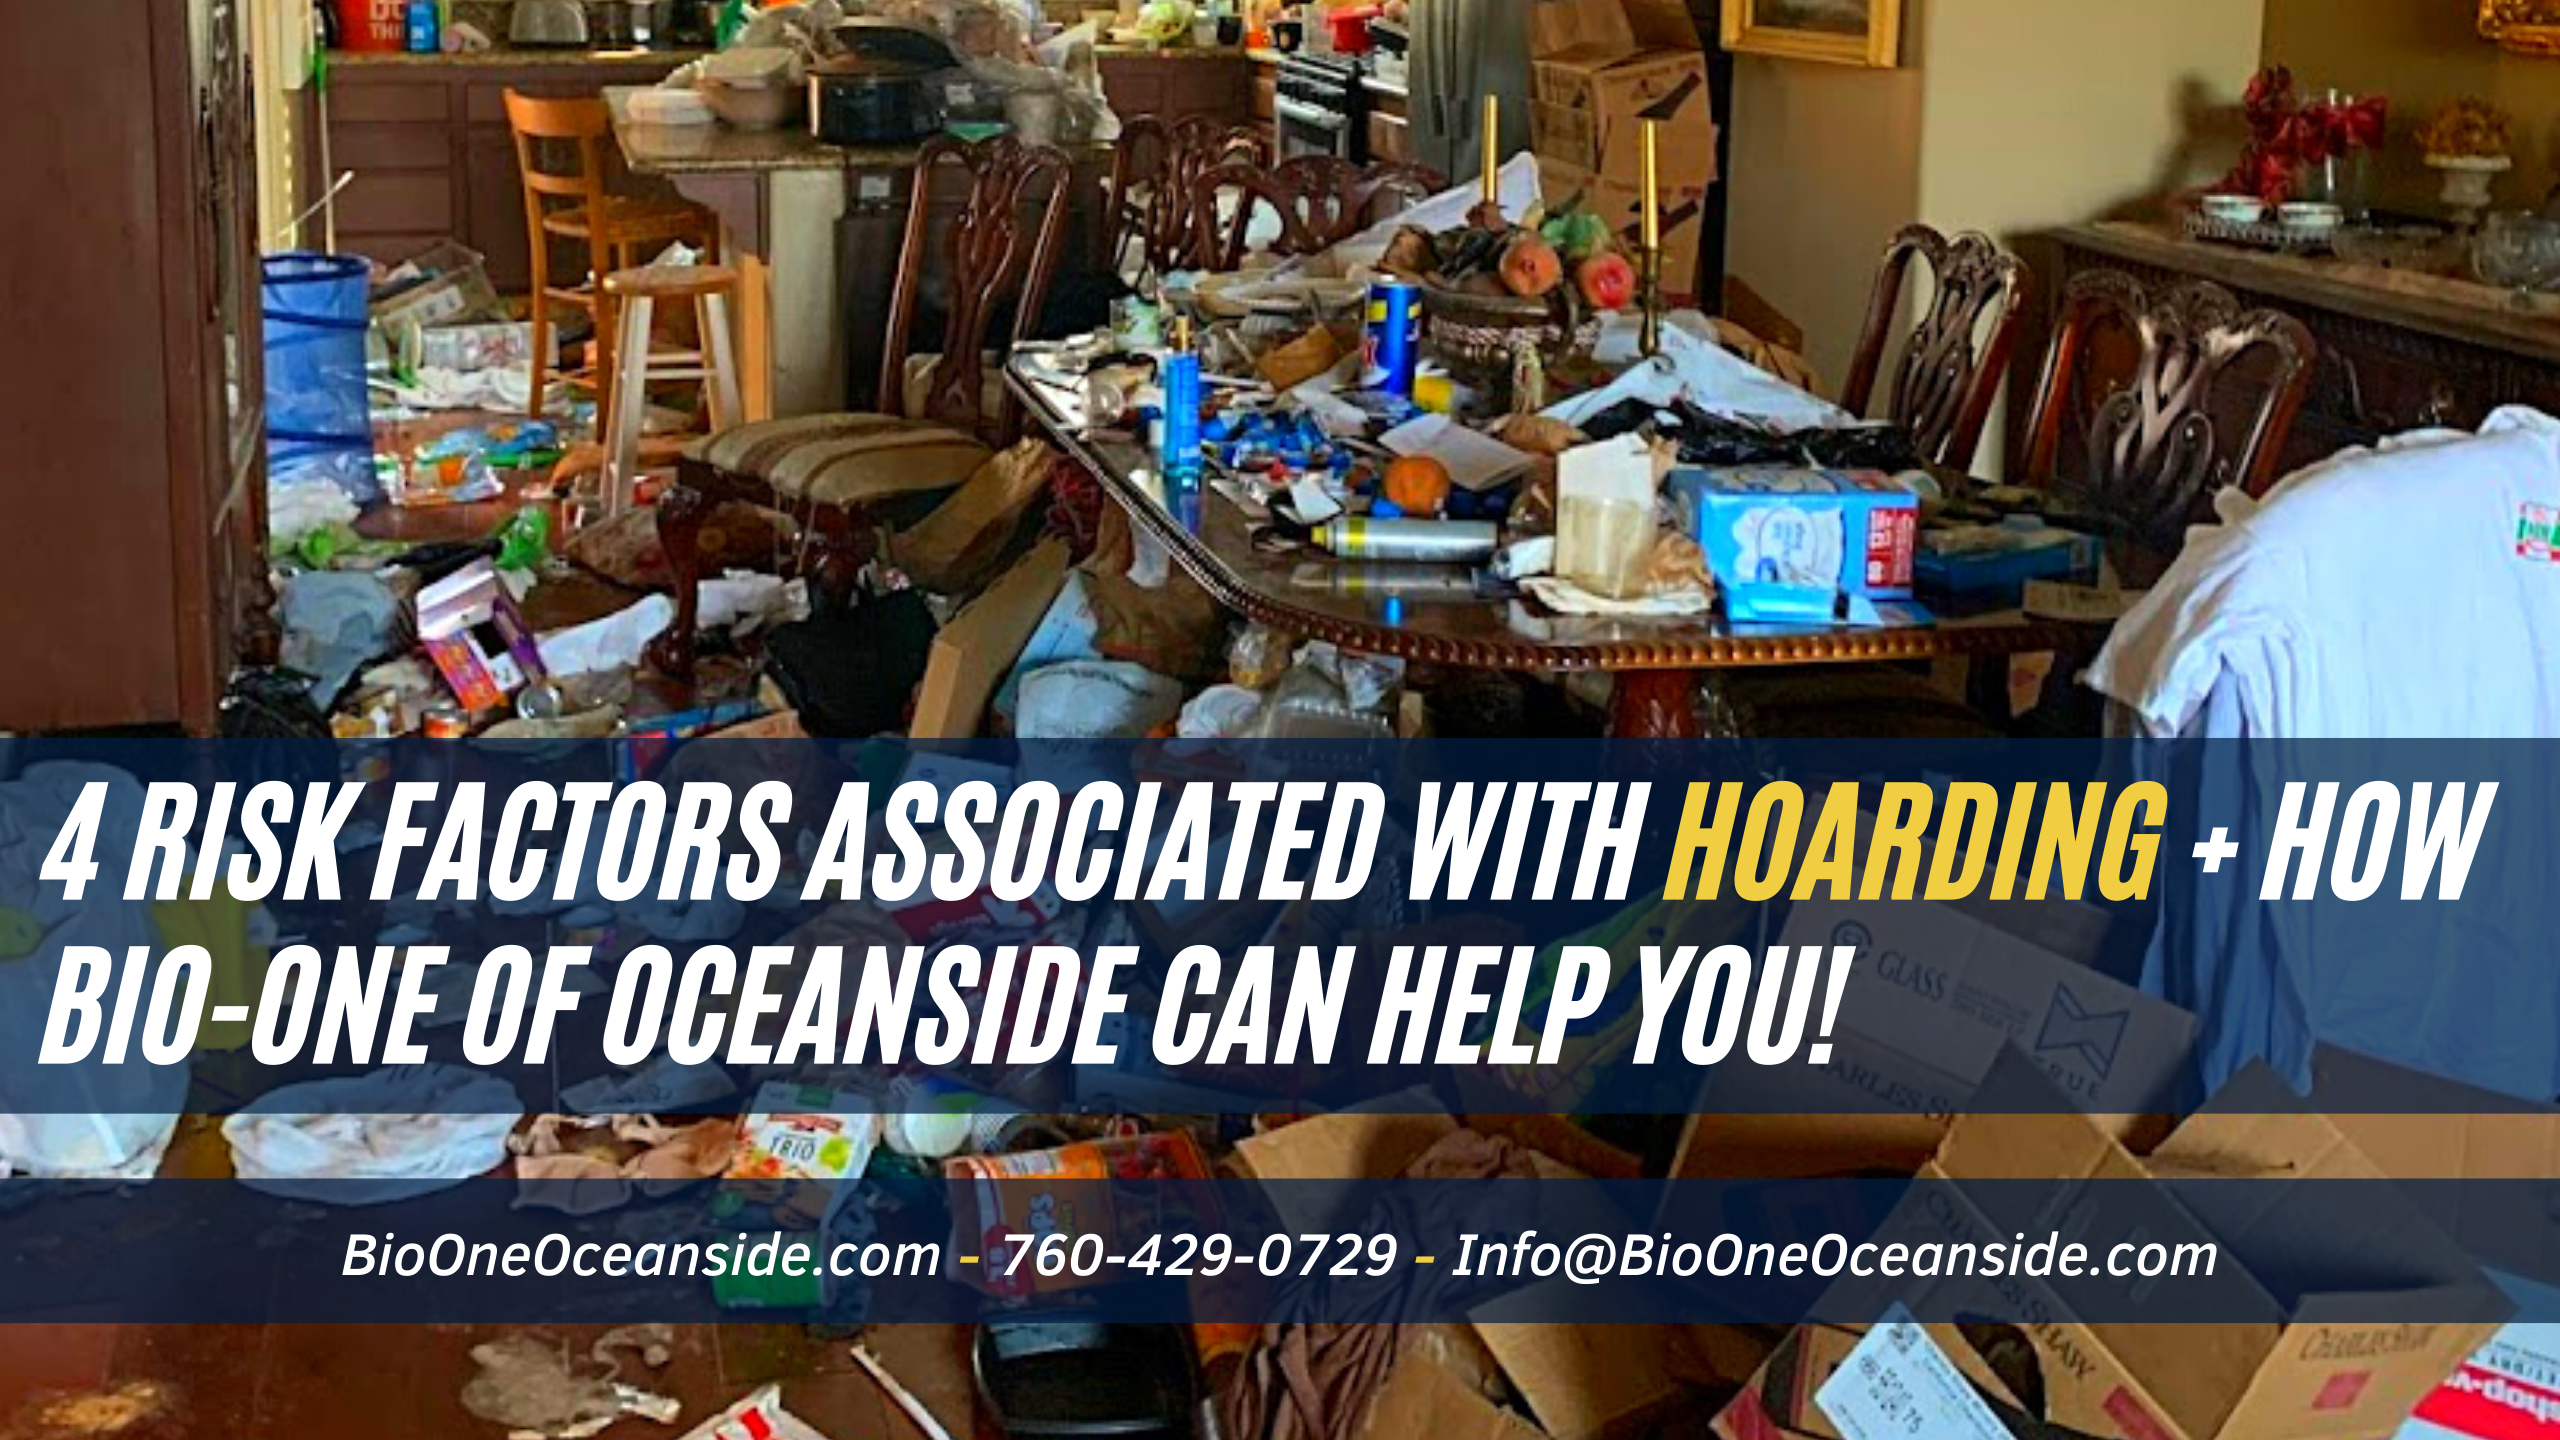 4 risk factors associated with hoarding + how Bio-One of Oceanside can help you!